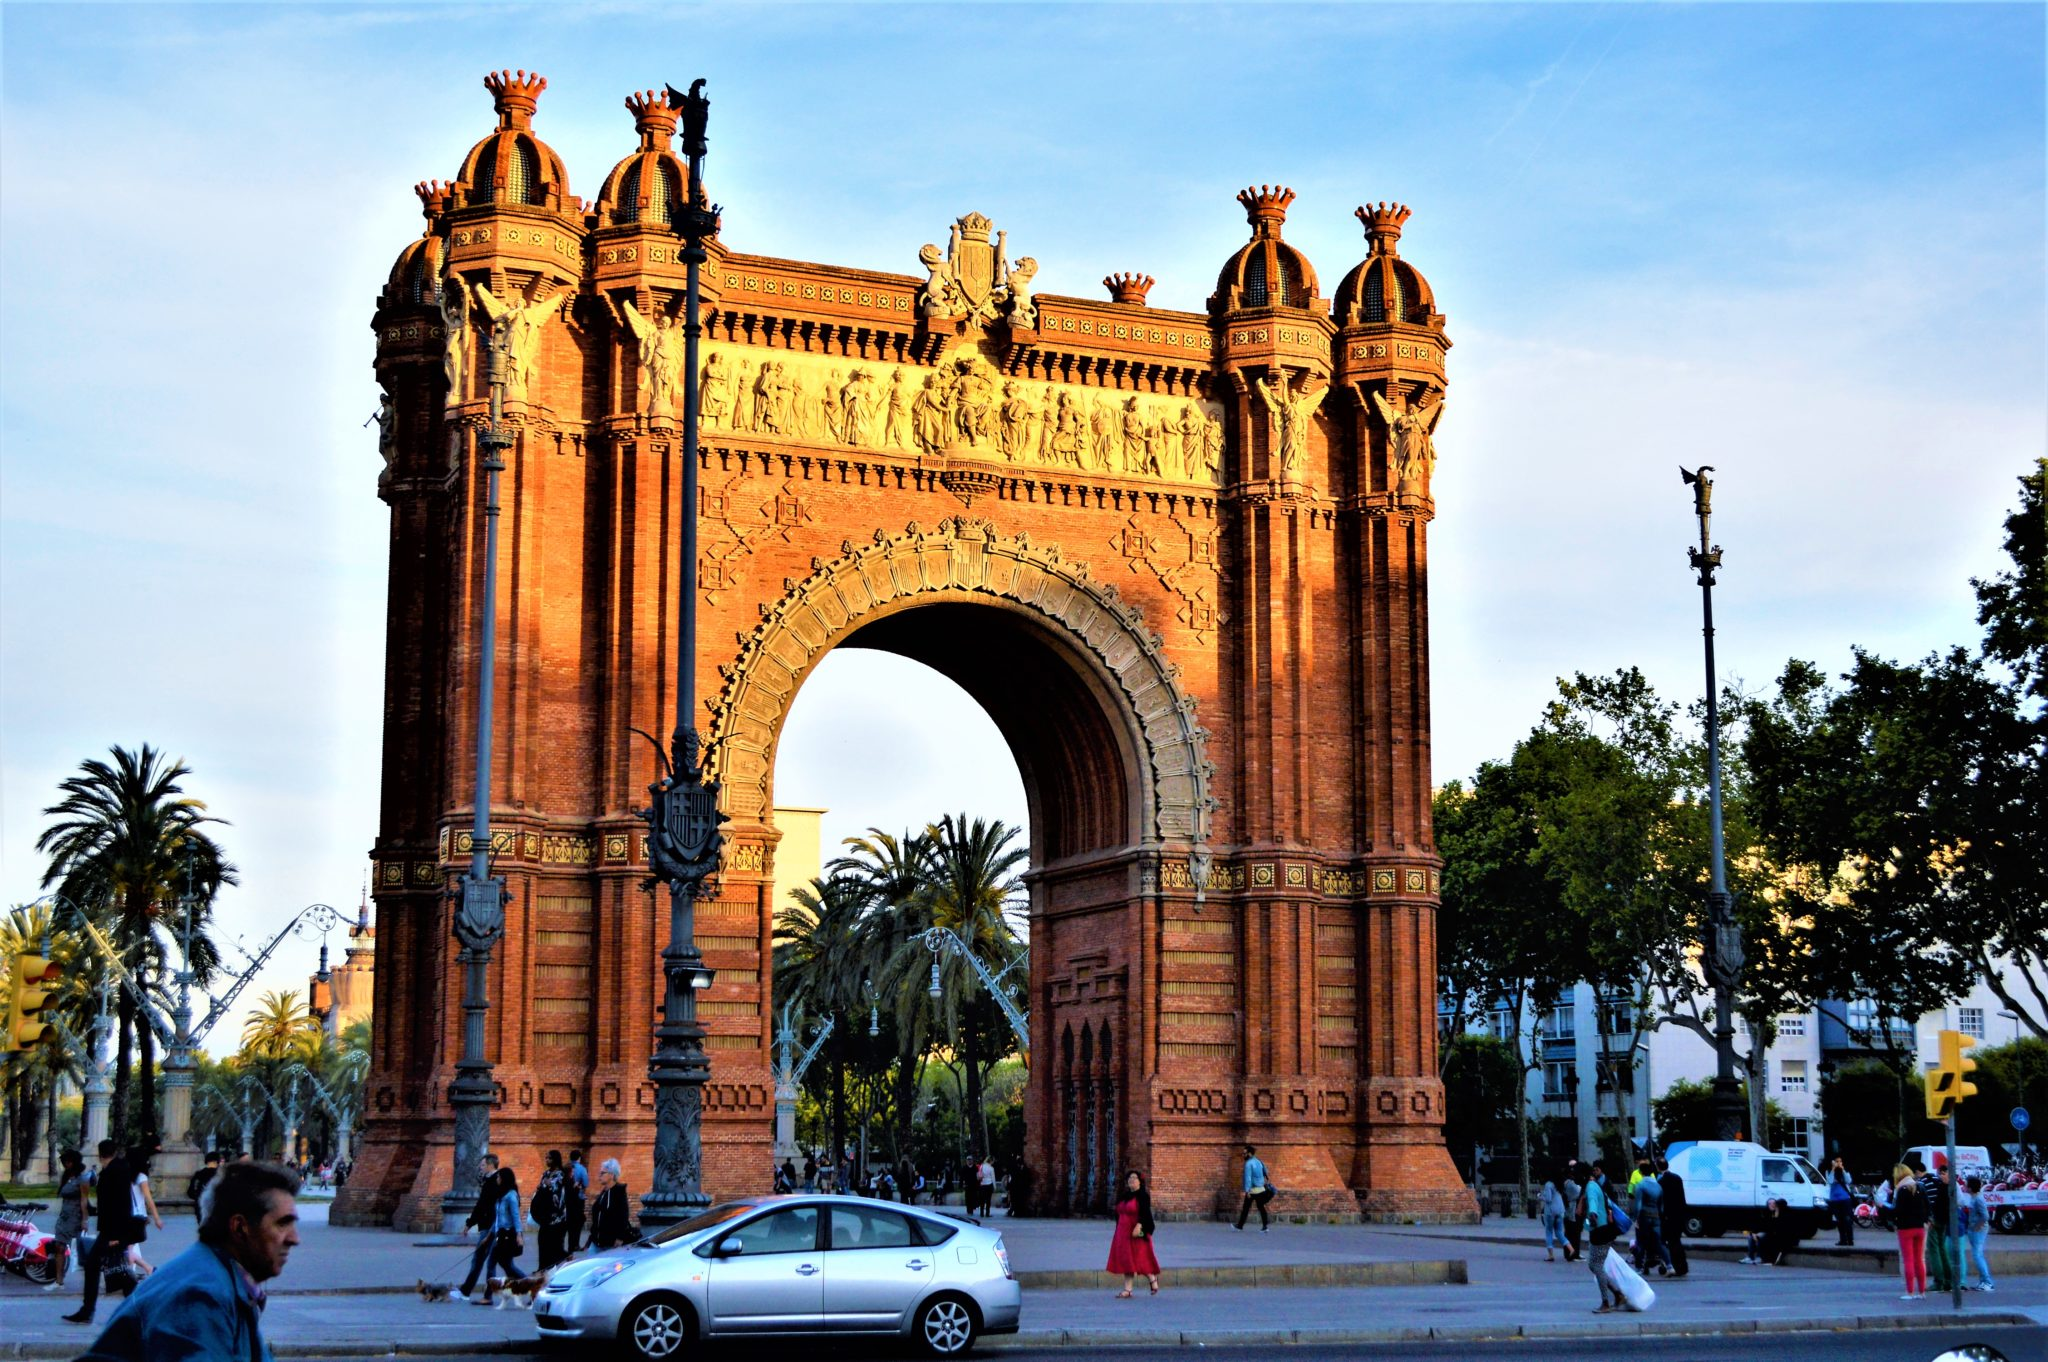 Arc de Triomf side view, Barcelona, Spain